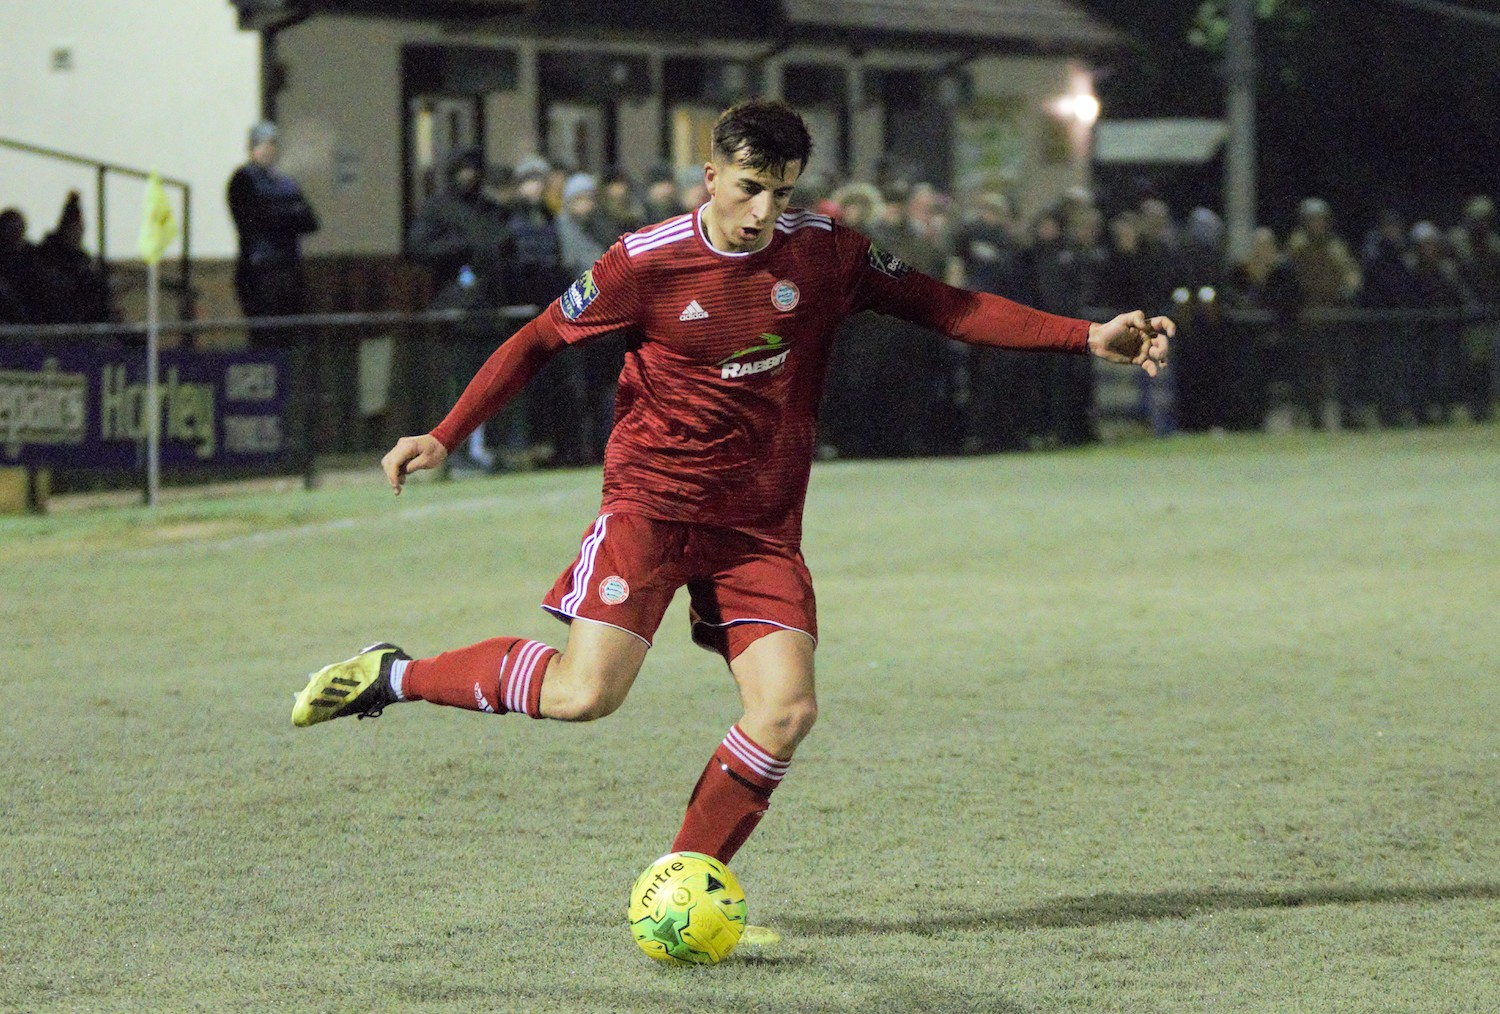 Read the full article - Gallery: Merstham [A] – League